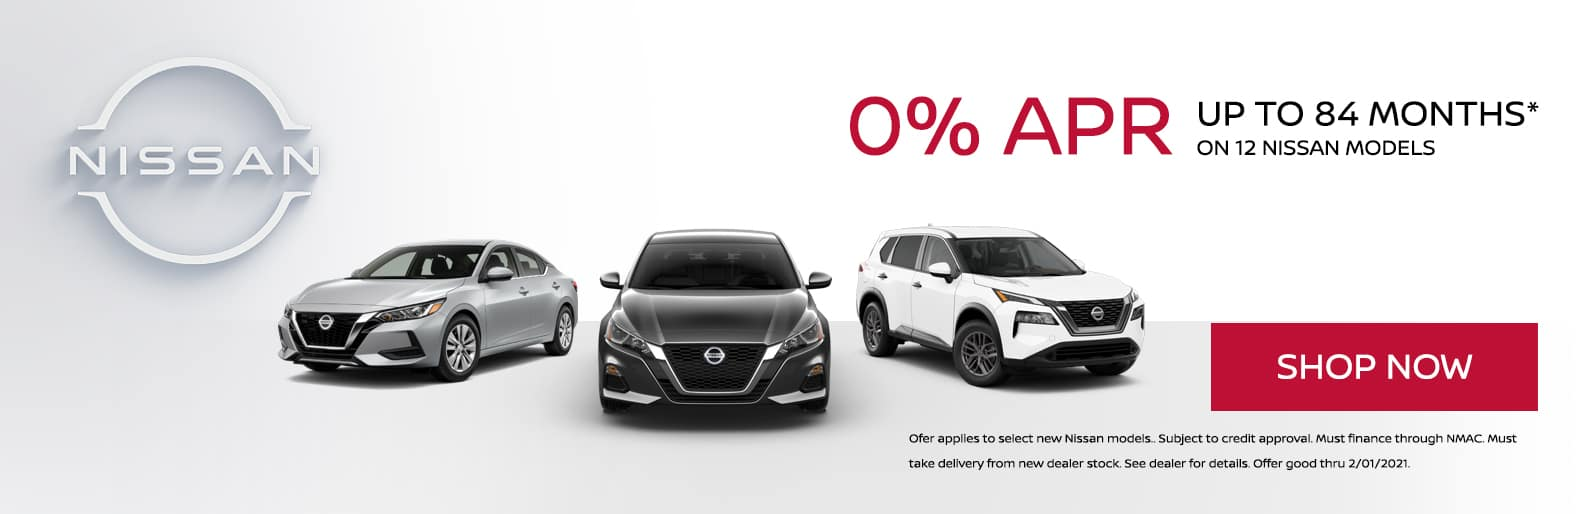 0% APR up to 84 months on 12 new Nissan models.